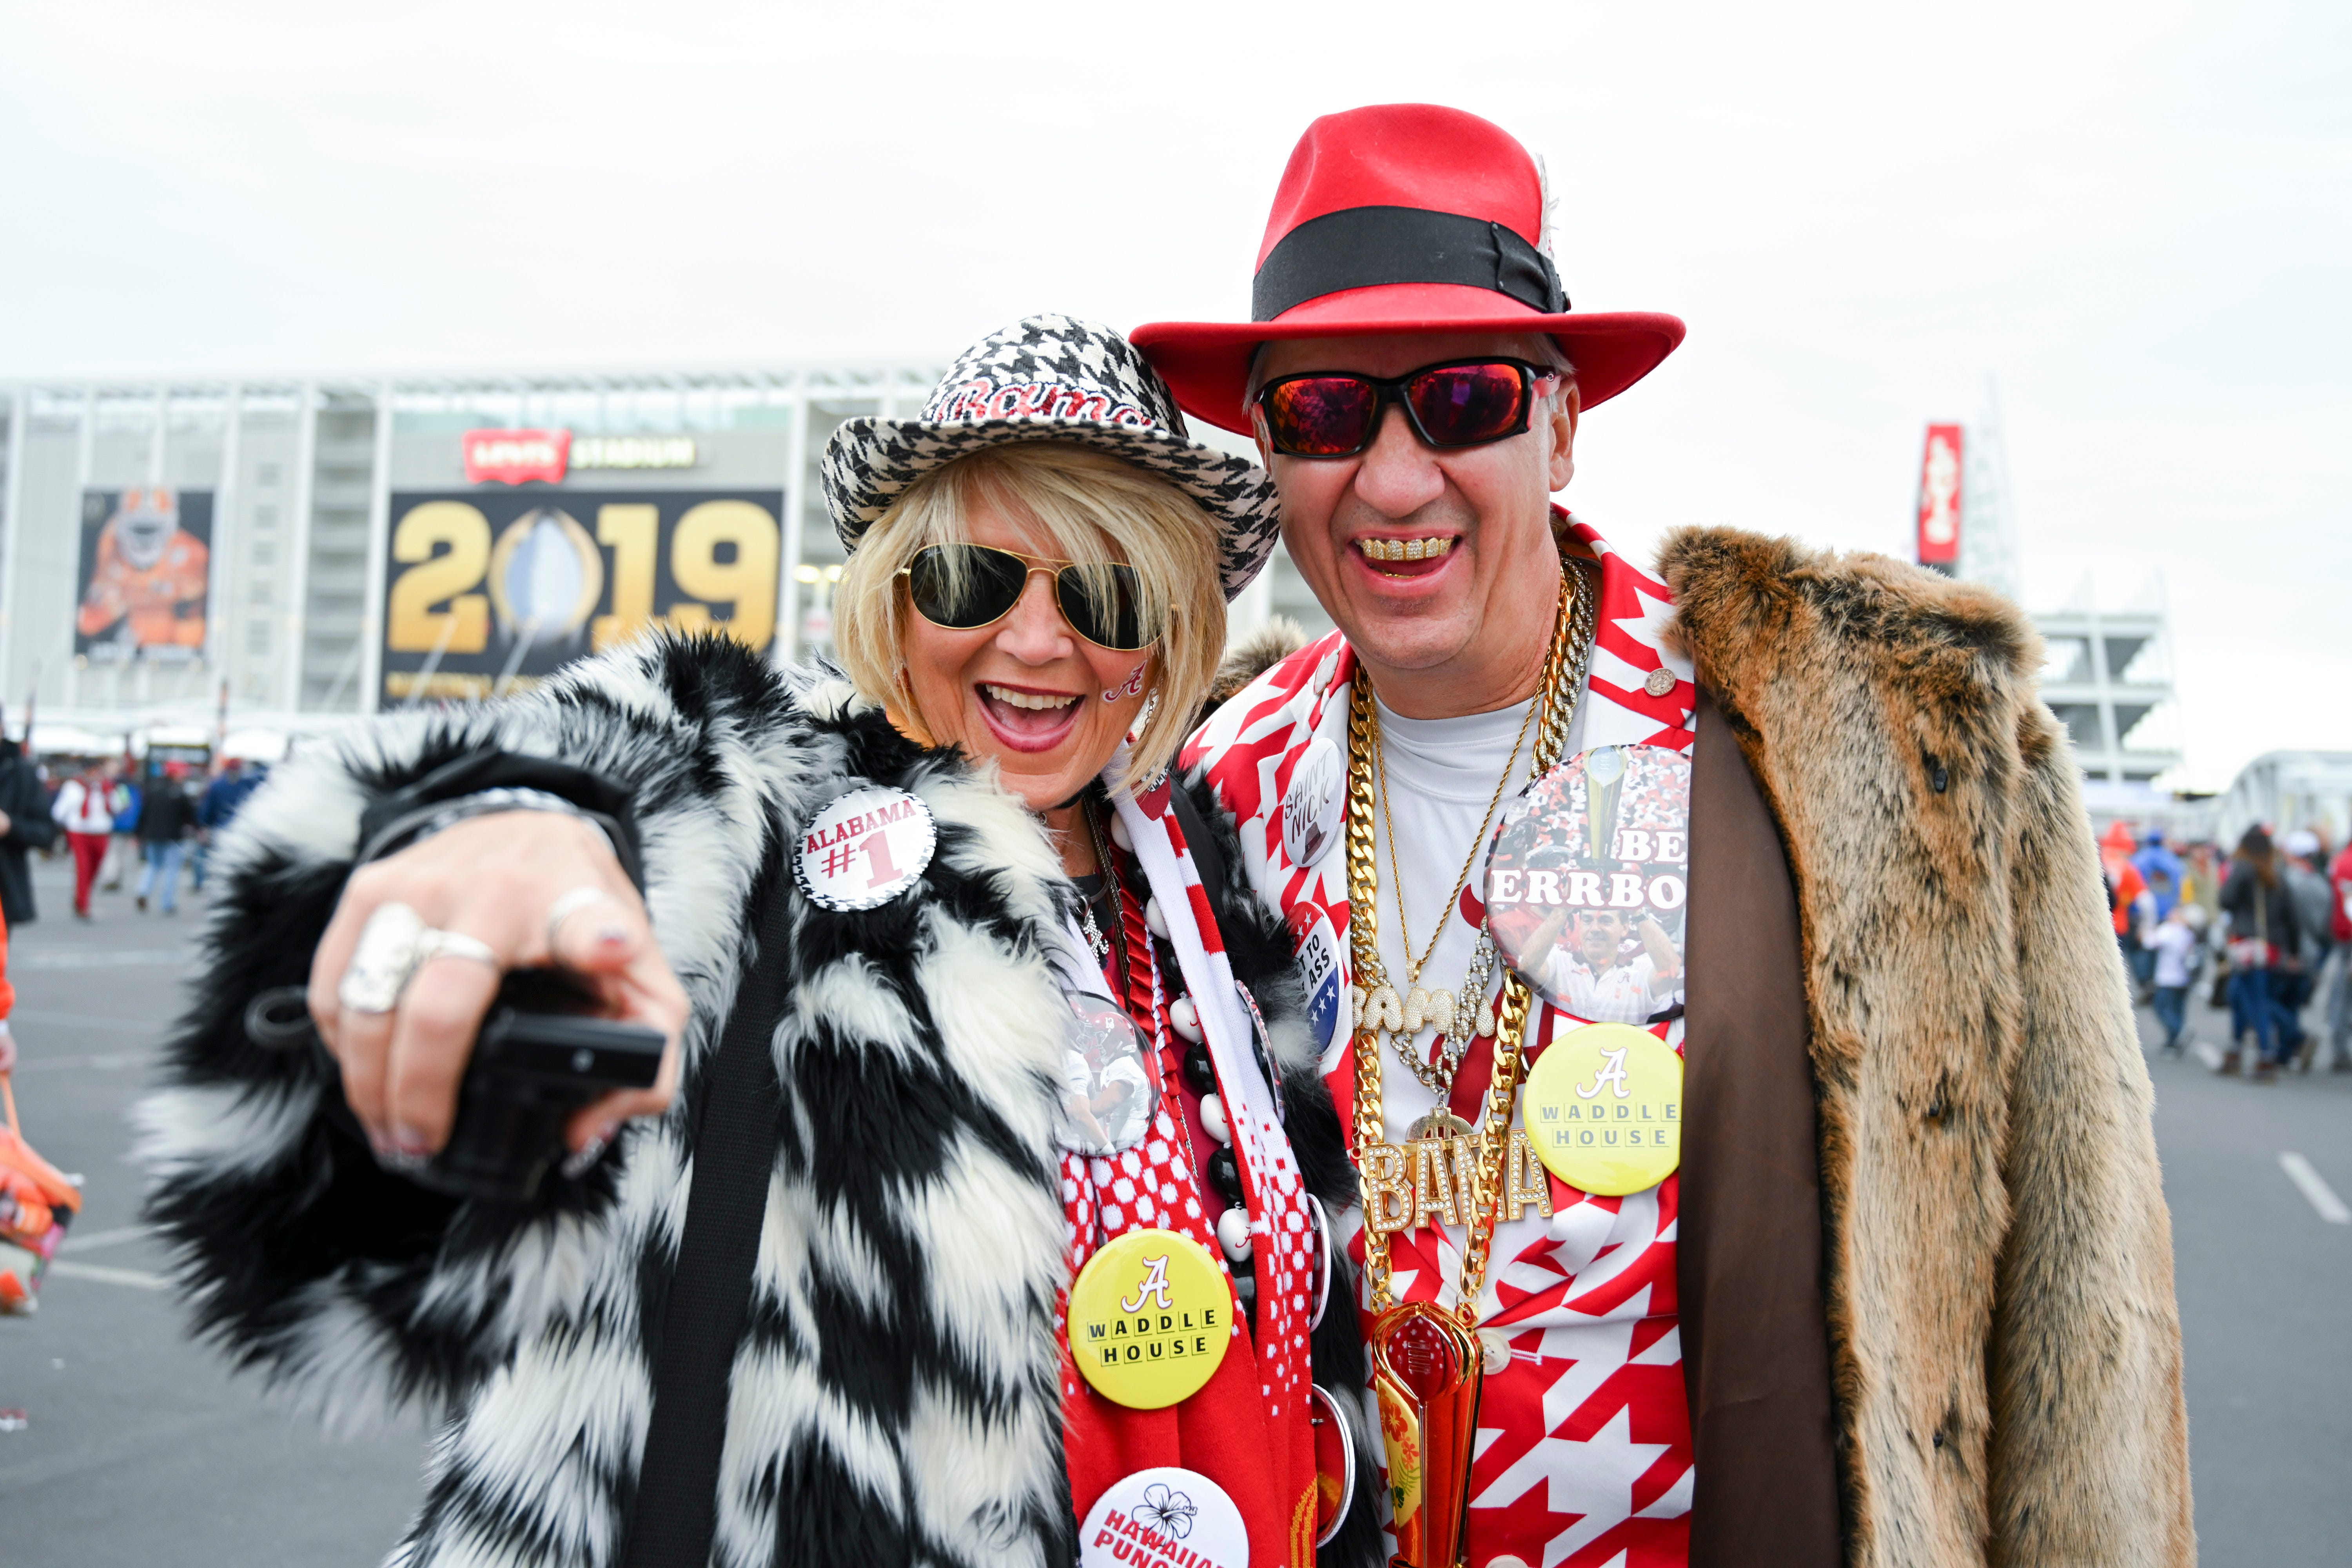 Alabama, Clemson fans attending national title game find great ticket prices on gameday